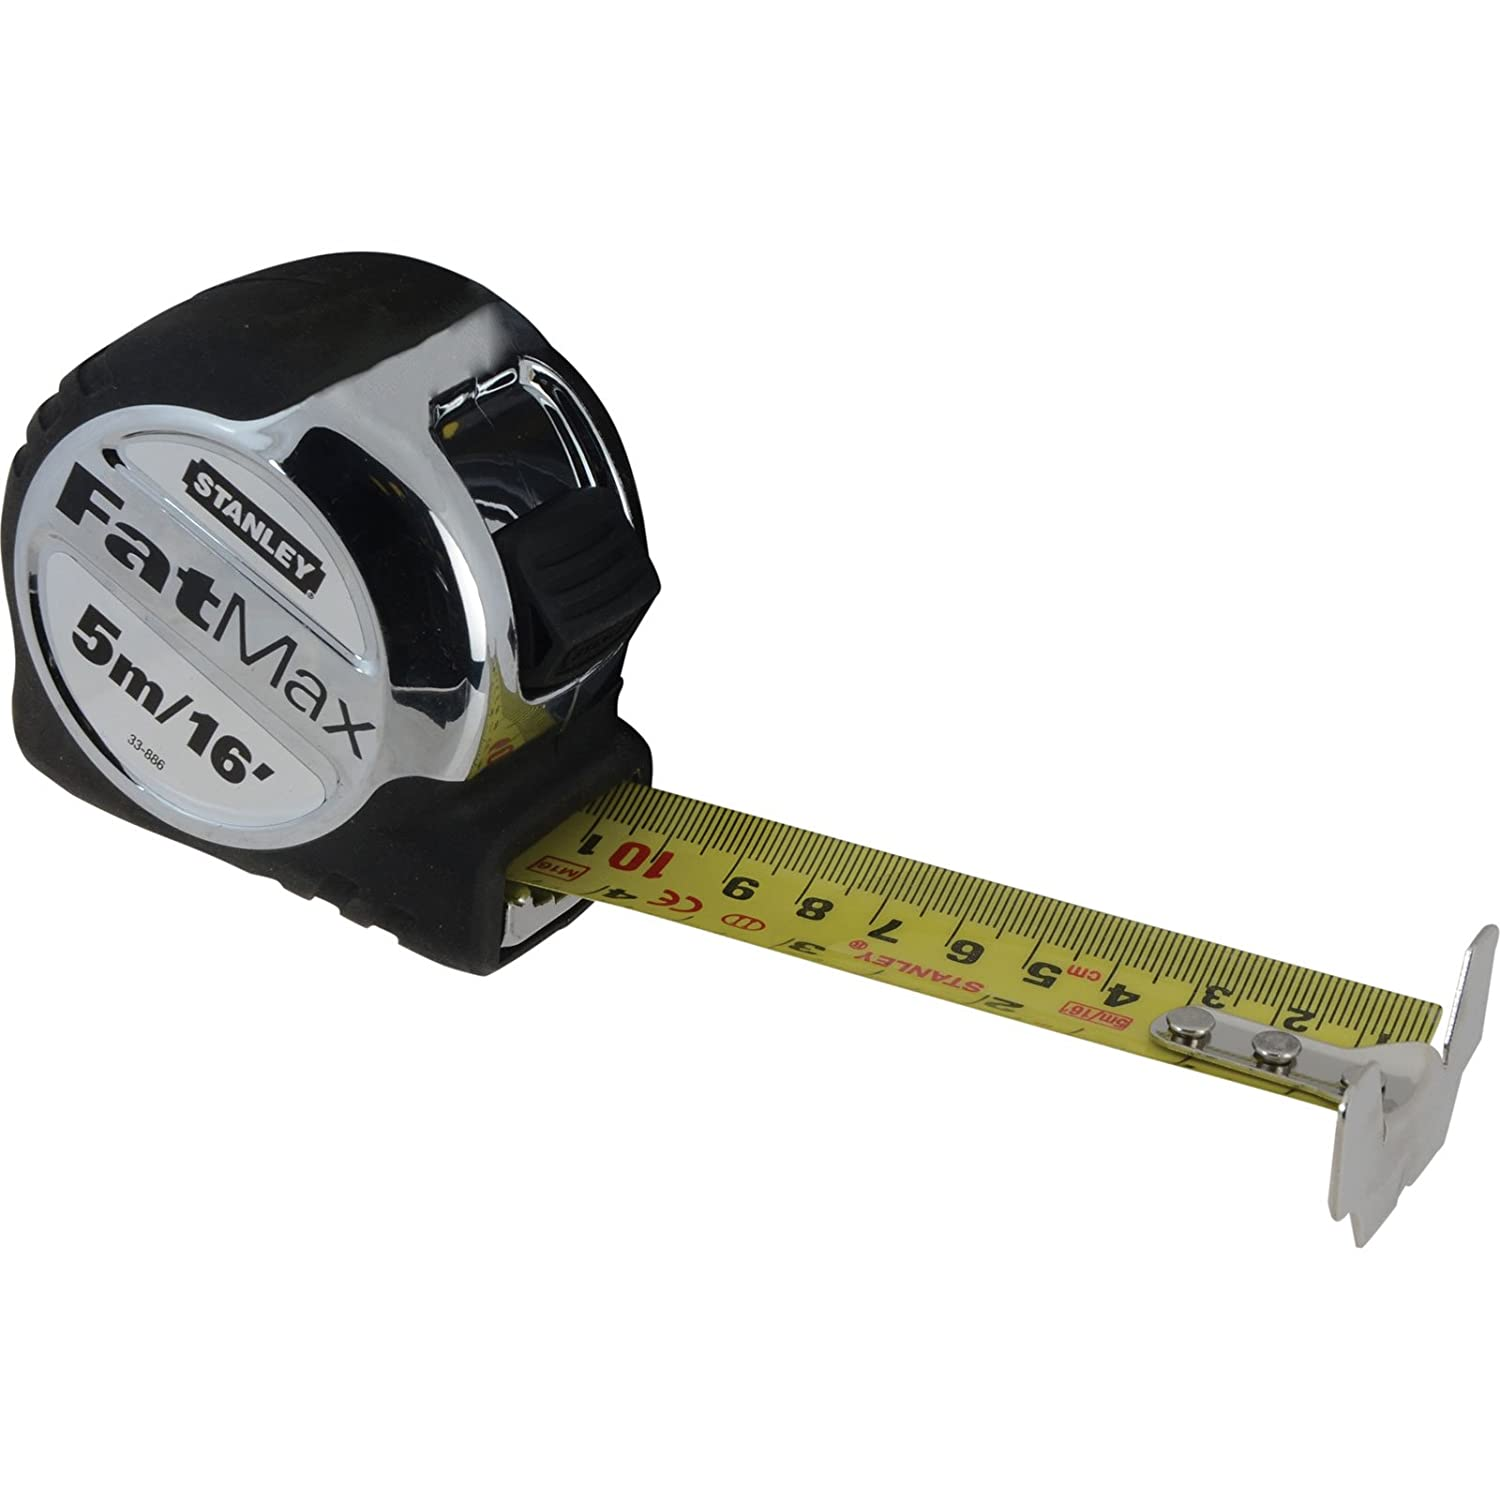 Stanley 533886 FatMax 5m/16ft Tape Measure